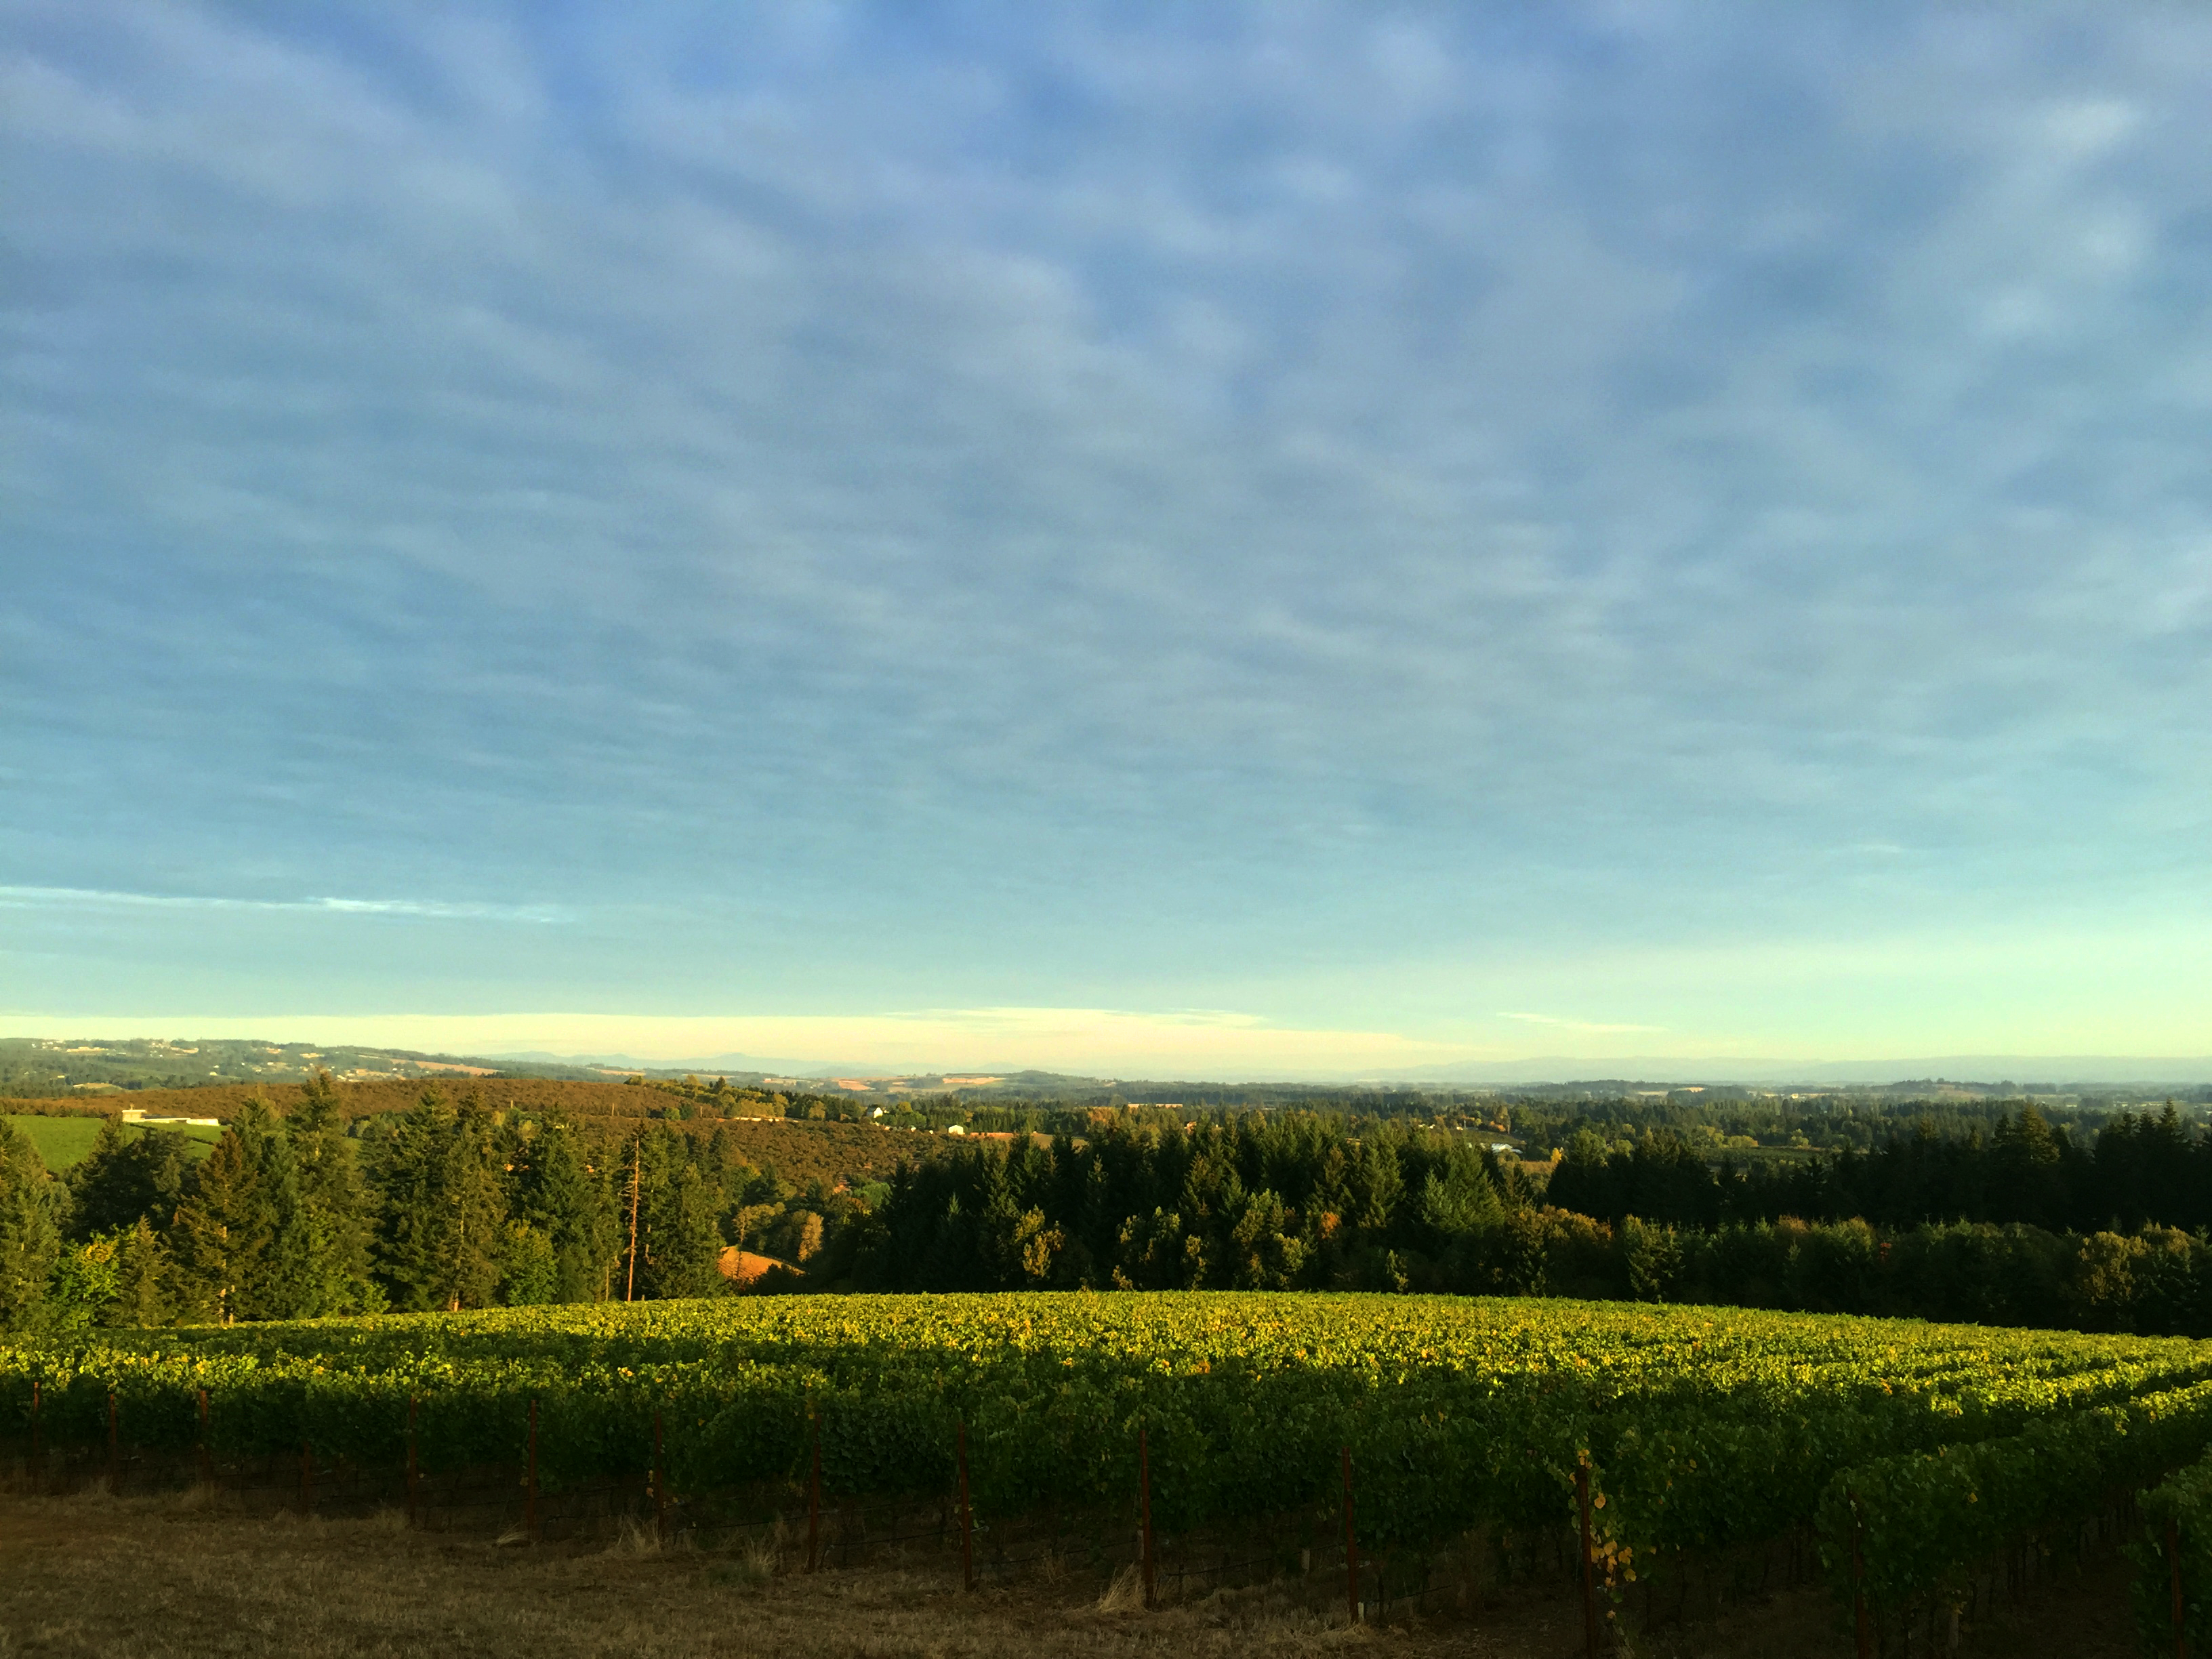 Vineyard View